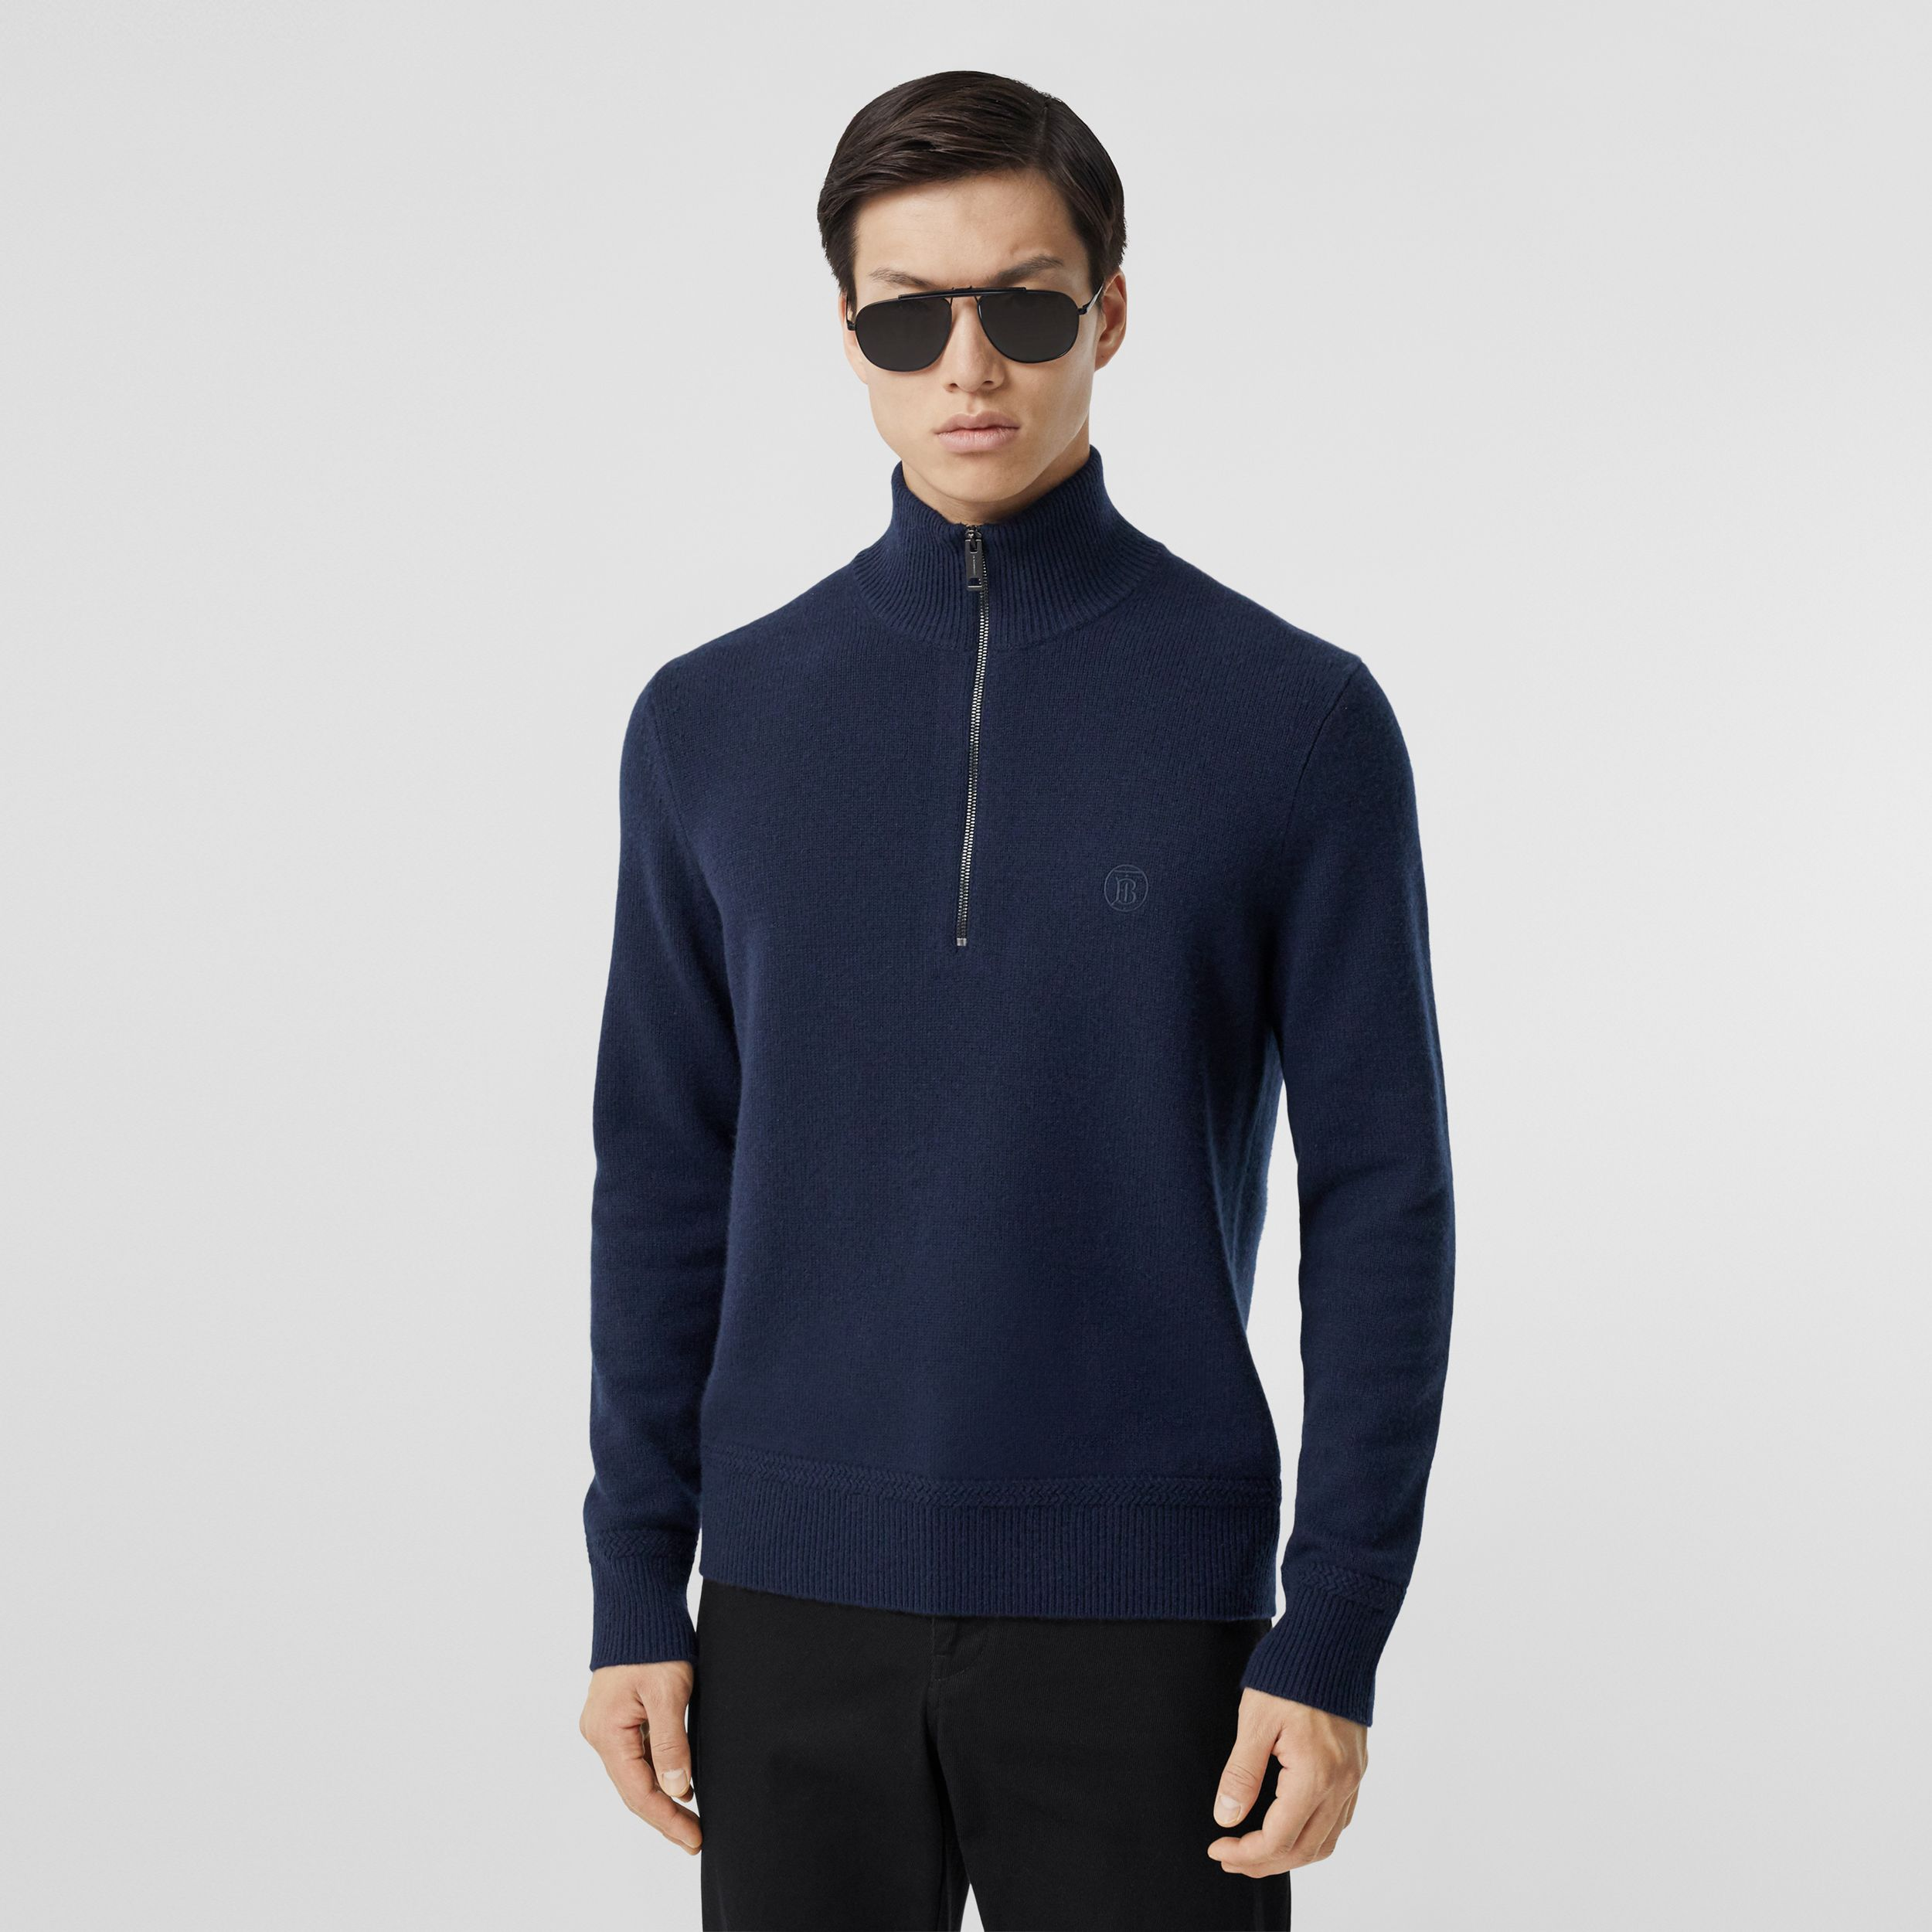 Monogram Motif Cashmere Funnel Neck Sweater in Navy - Men | Burberry - 1